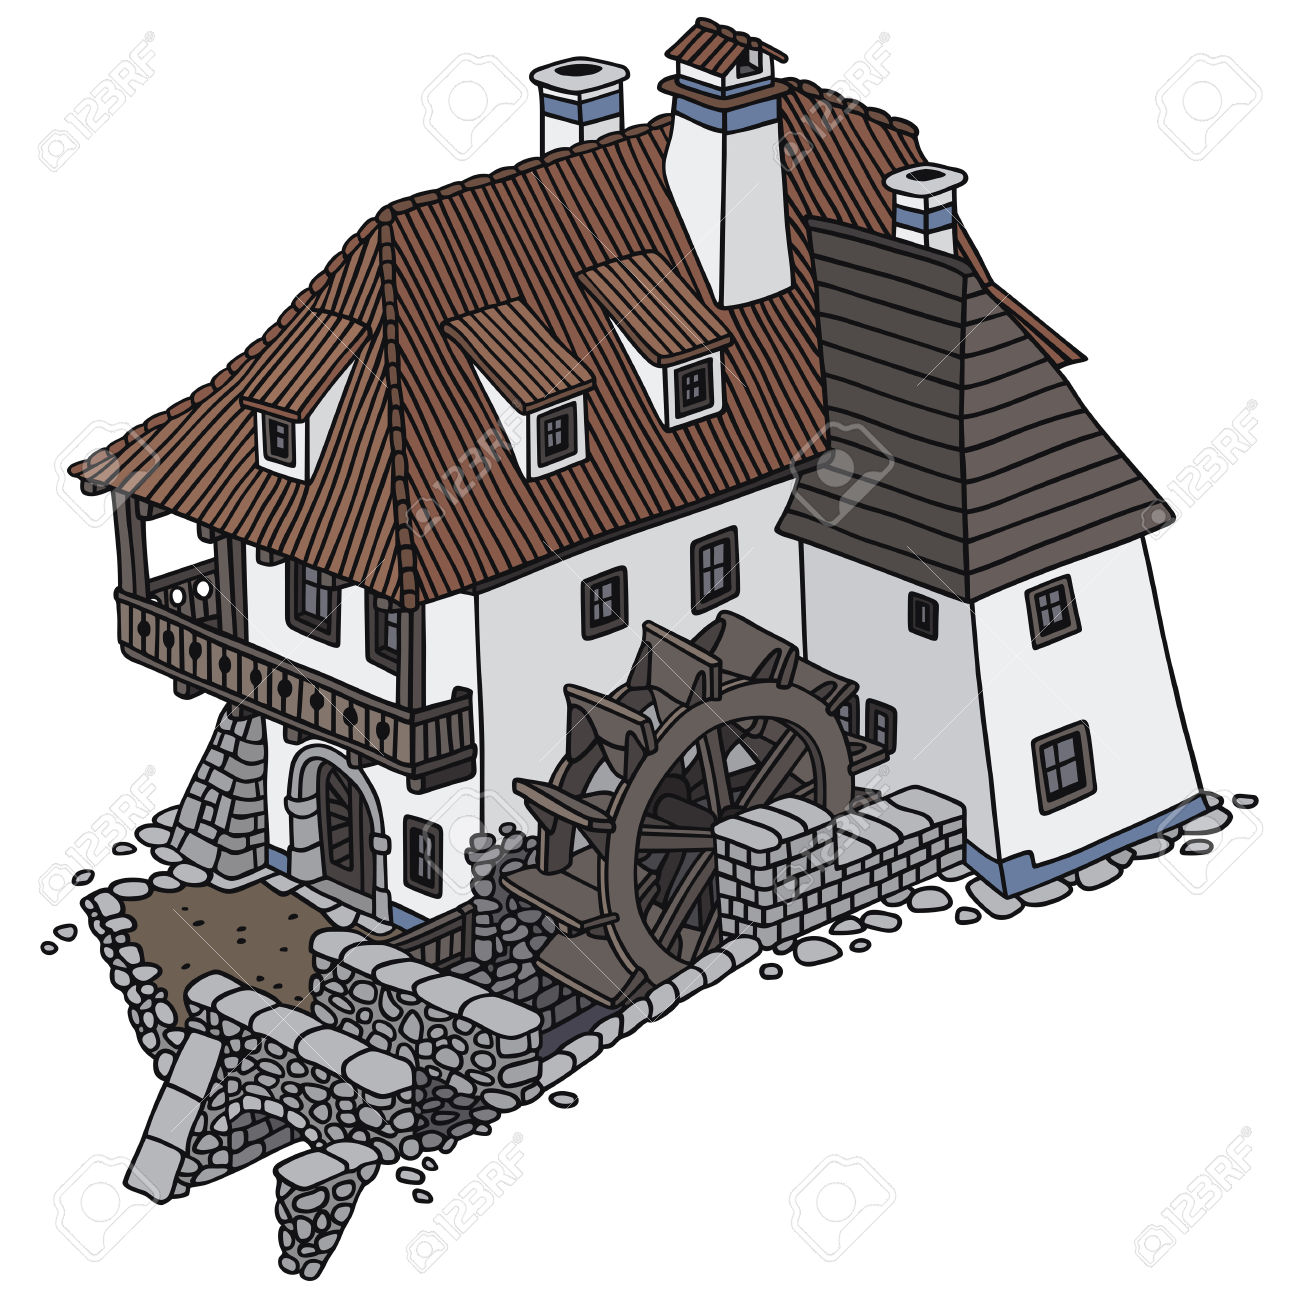 Hand Drawing Of An Old Water Mill Royalty Free Cliparts, Vectors.